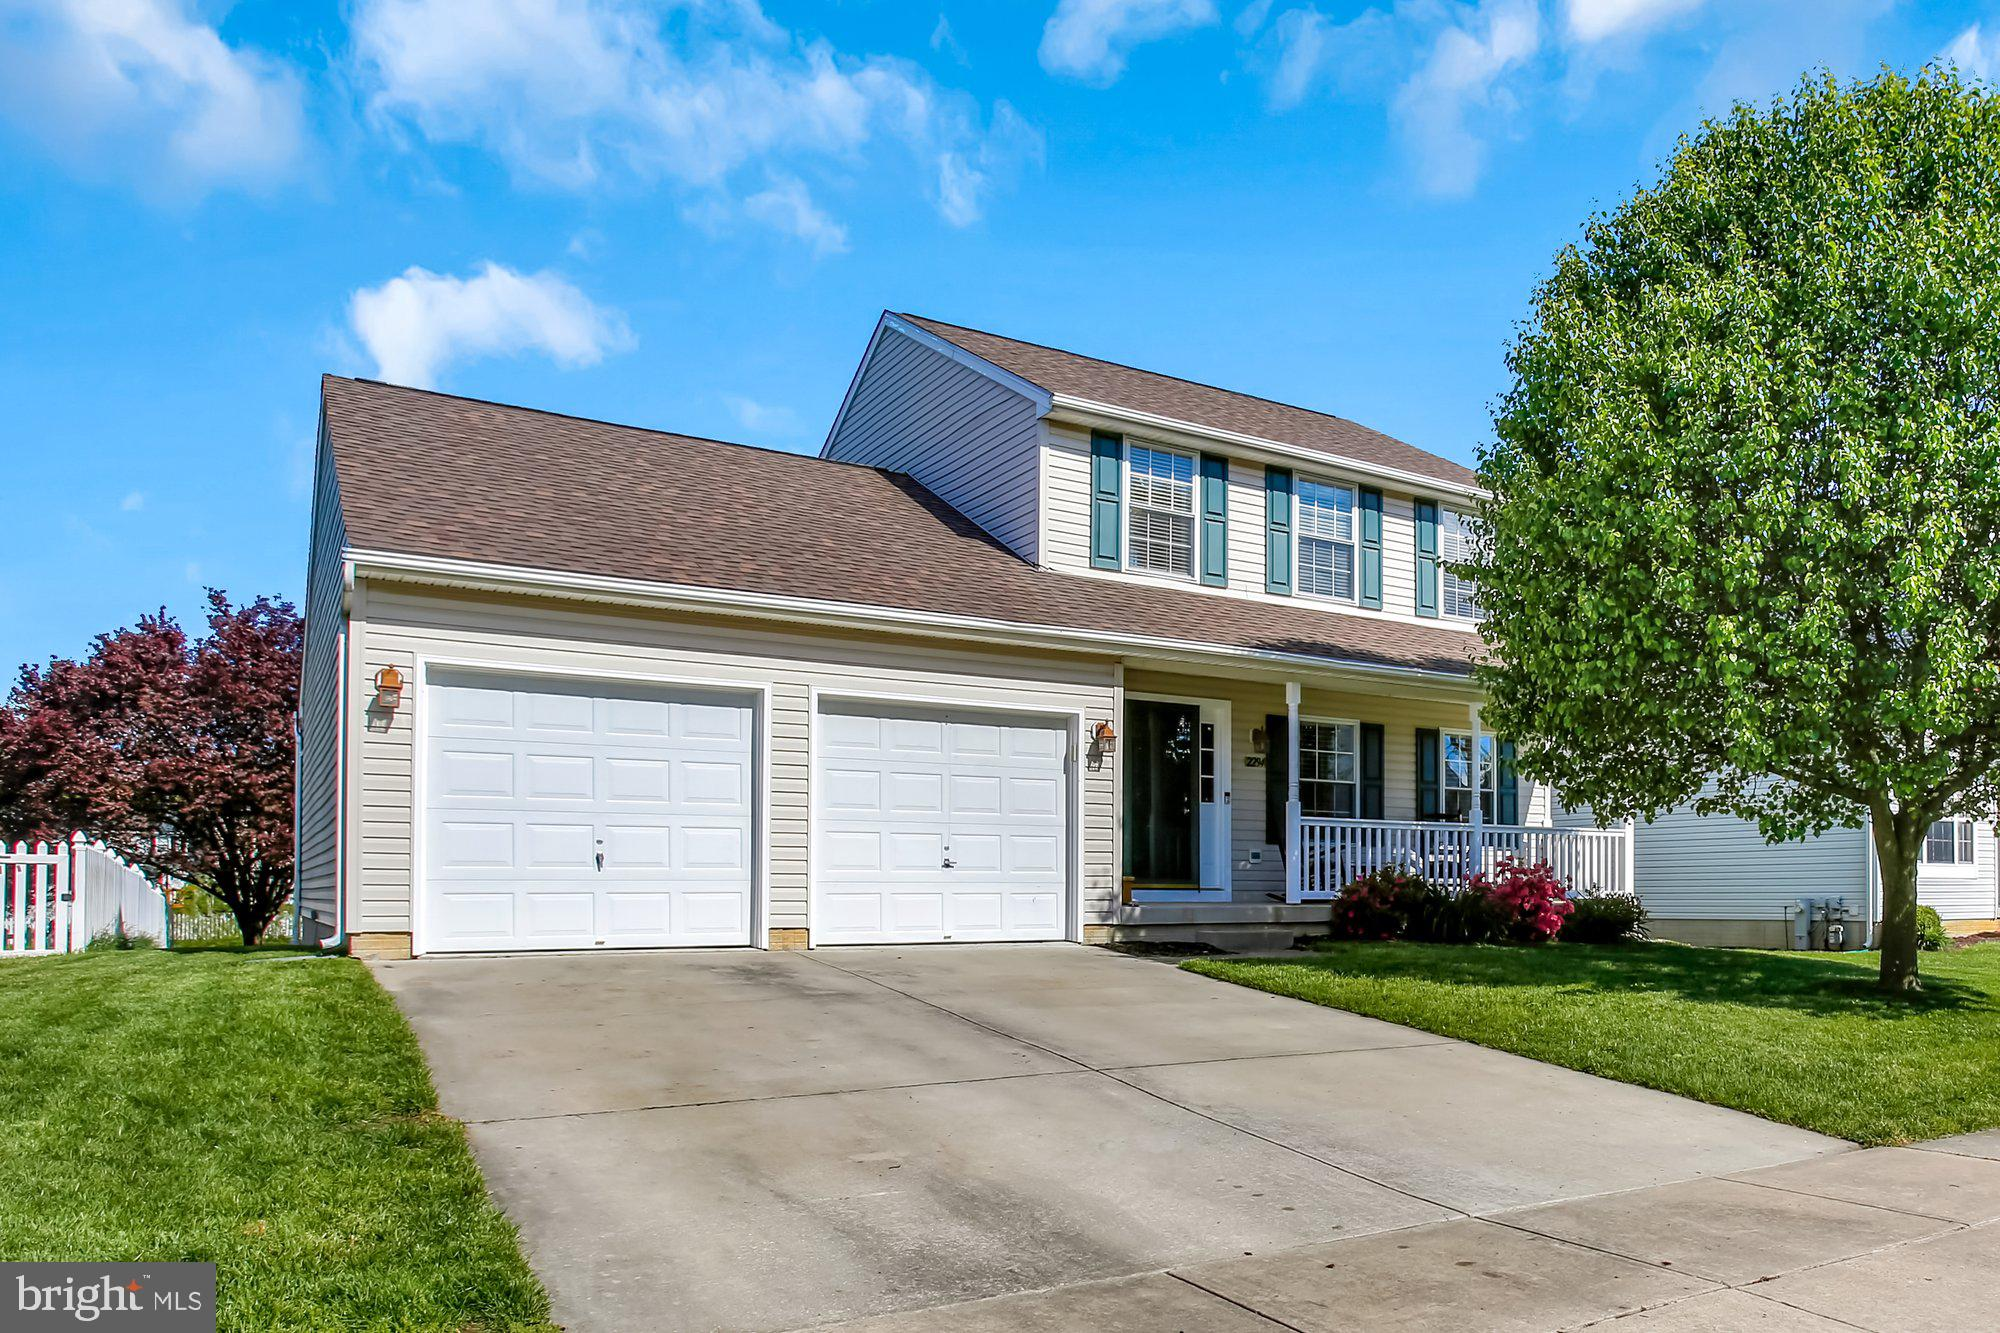 WELCOME HOME TO 2294 HOWLAND Dr - Located in the Forest Hill community of Tuchahoe Farms* Featuring